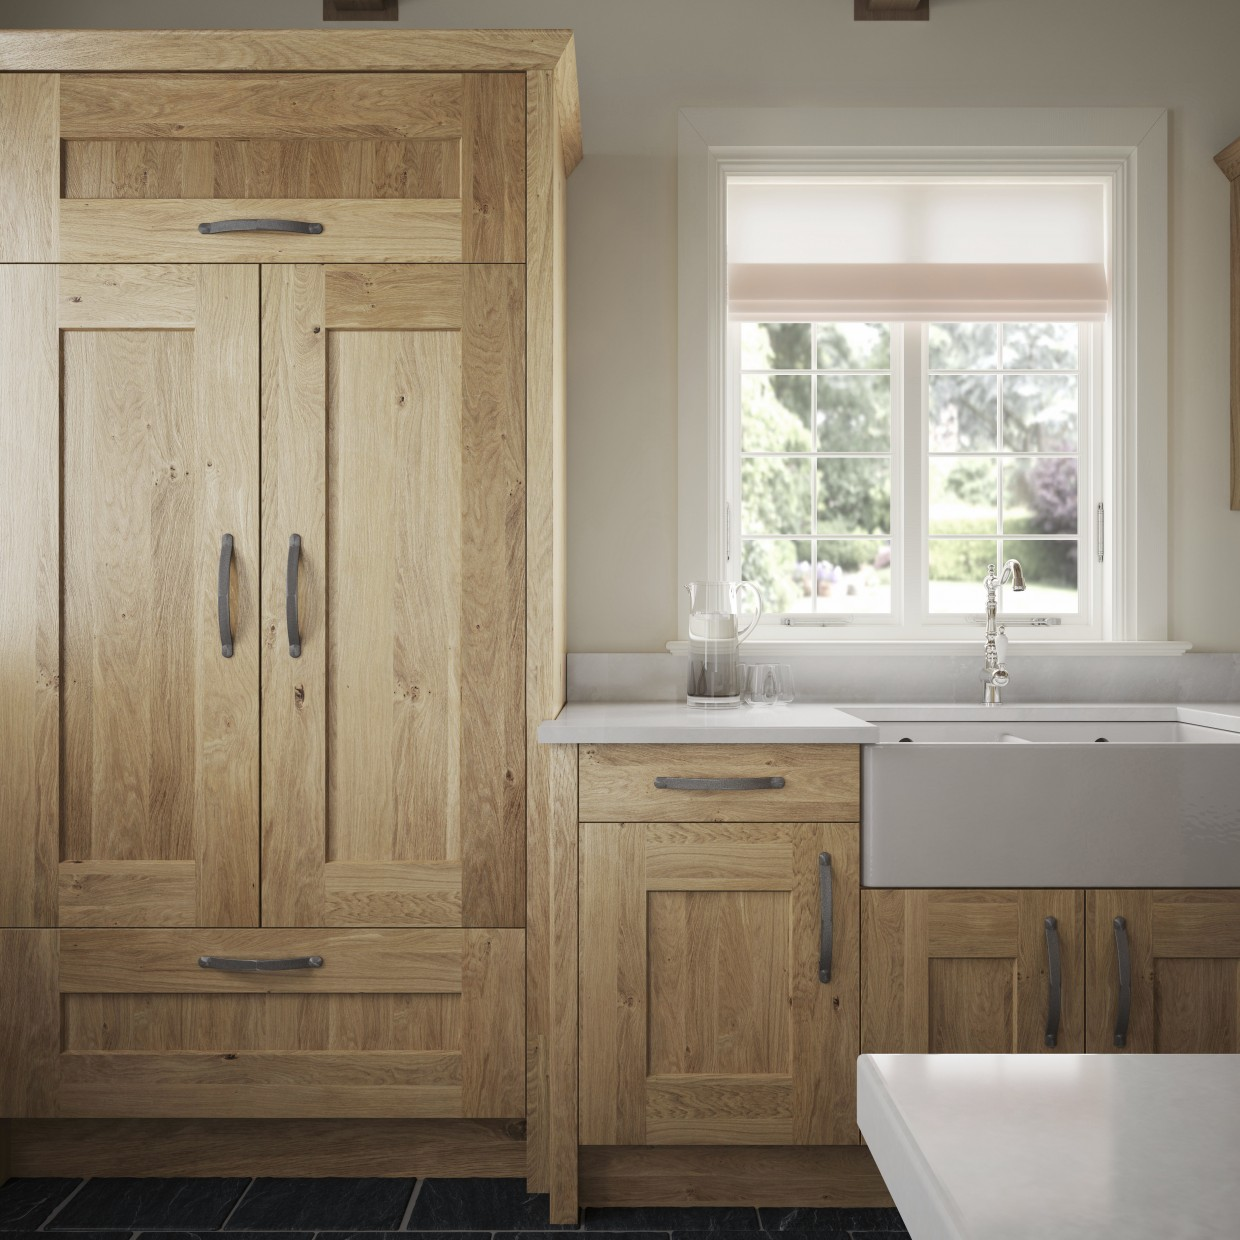 Knotted Oak Kitchen Cabinets: Kitchen Solutions Kilkenny